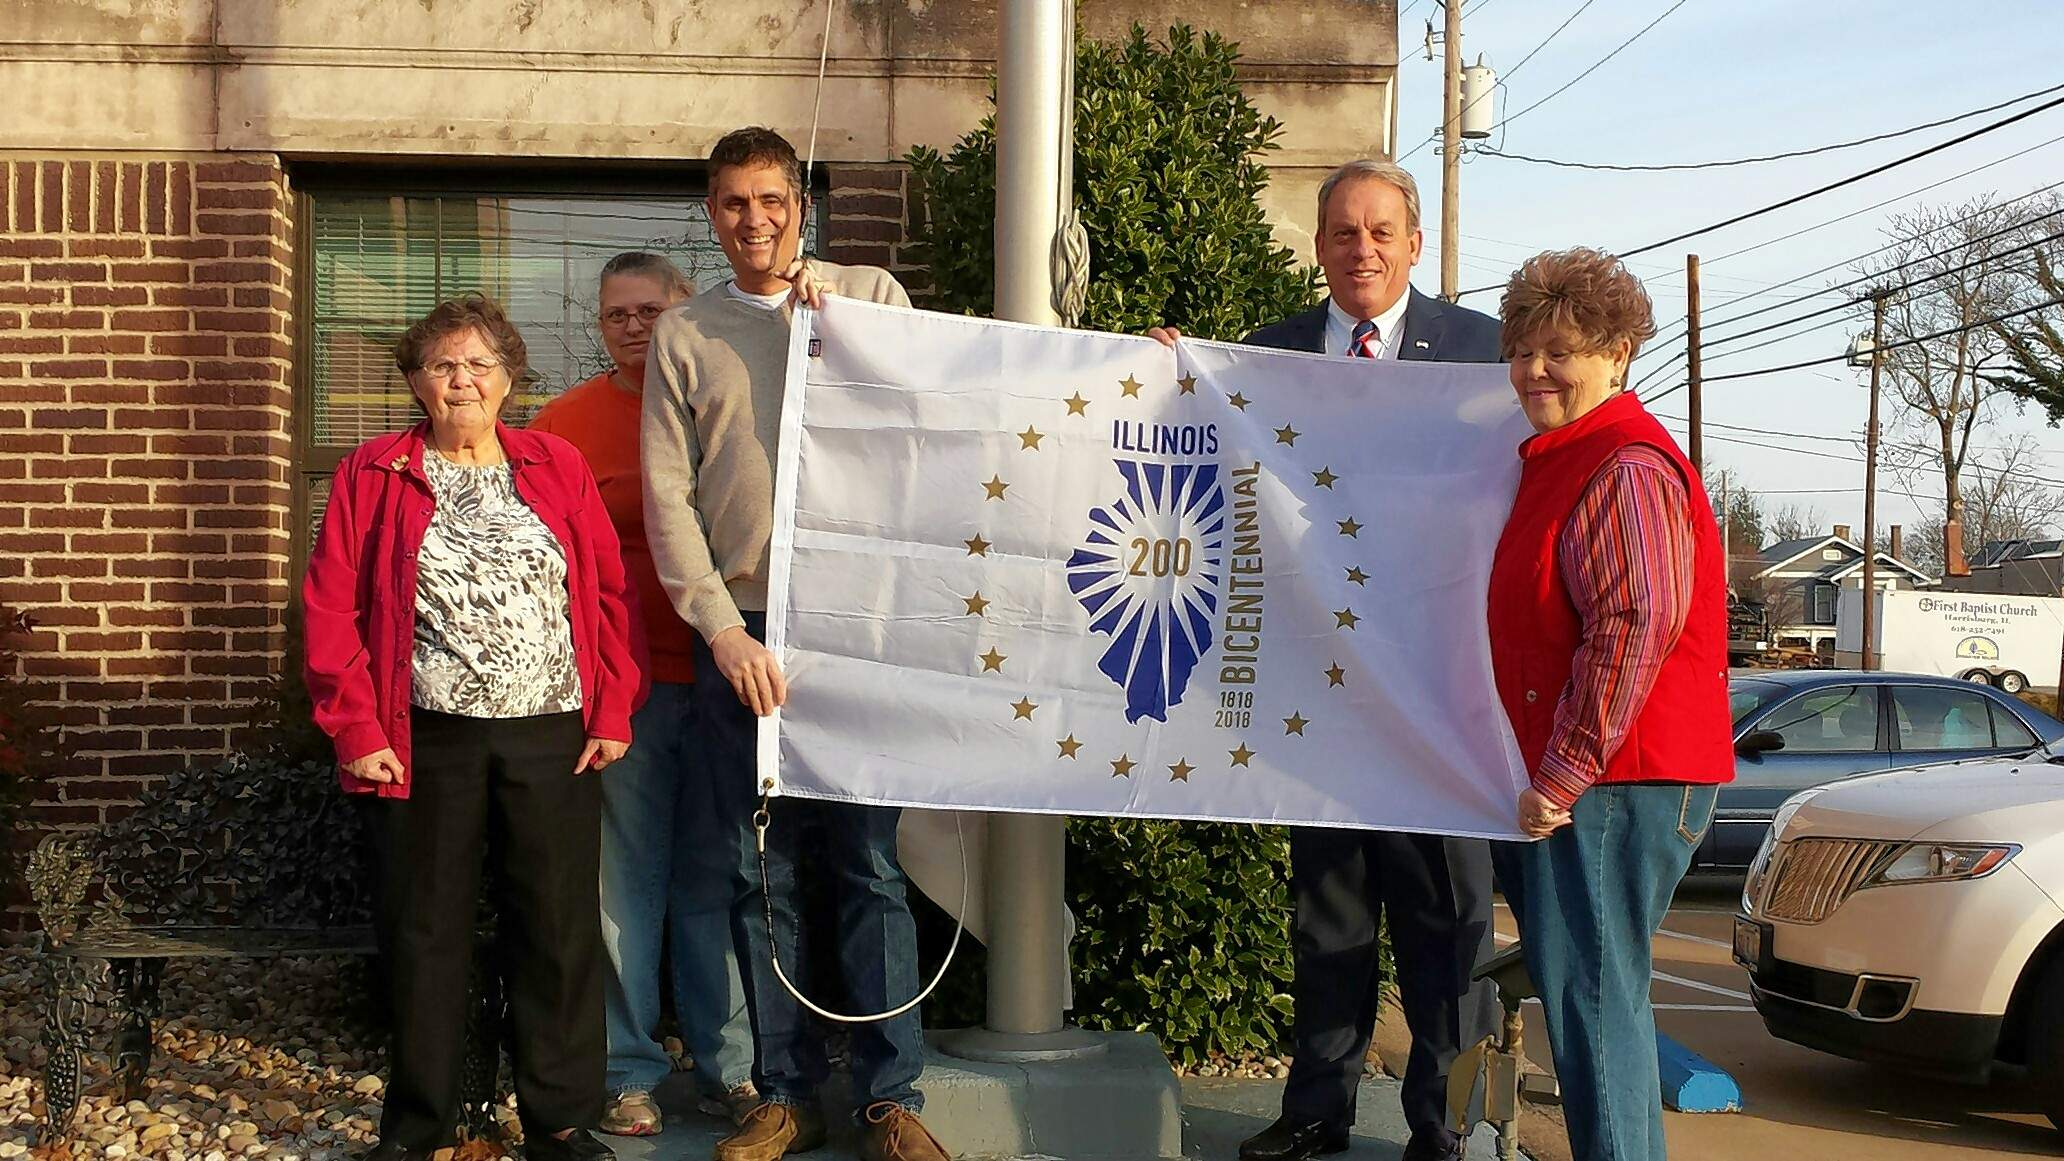 Harrisburg raised its Illinois Bicentennial flag Monday morning at city hall. From left are Delores Vick, Michael Hillegas DAR Bicentennial Committee, Harrisburg Mayor John McPeek, State Sen. Dale Fowler, R-Harrisburg, and Sharon Tanner, Michael Hillegas DAR Chapter Regent/Bicentennial Committee.